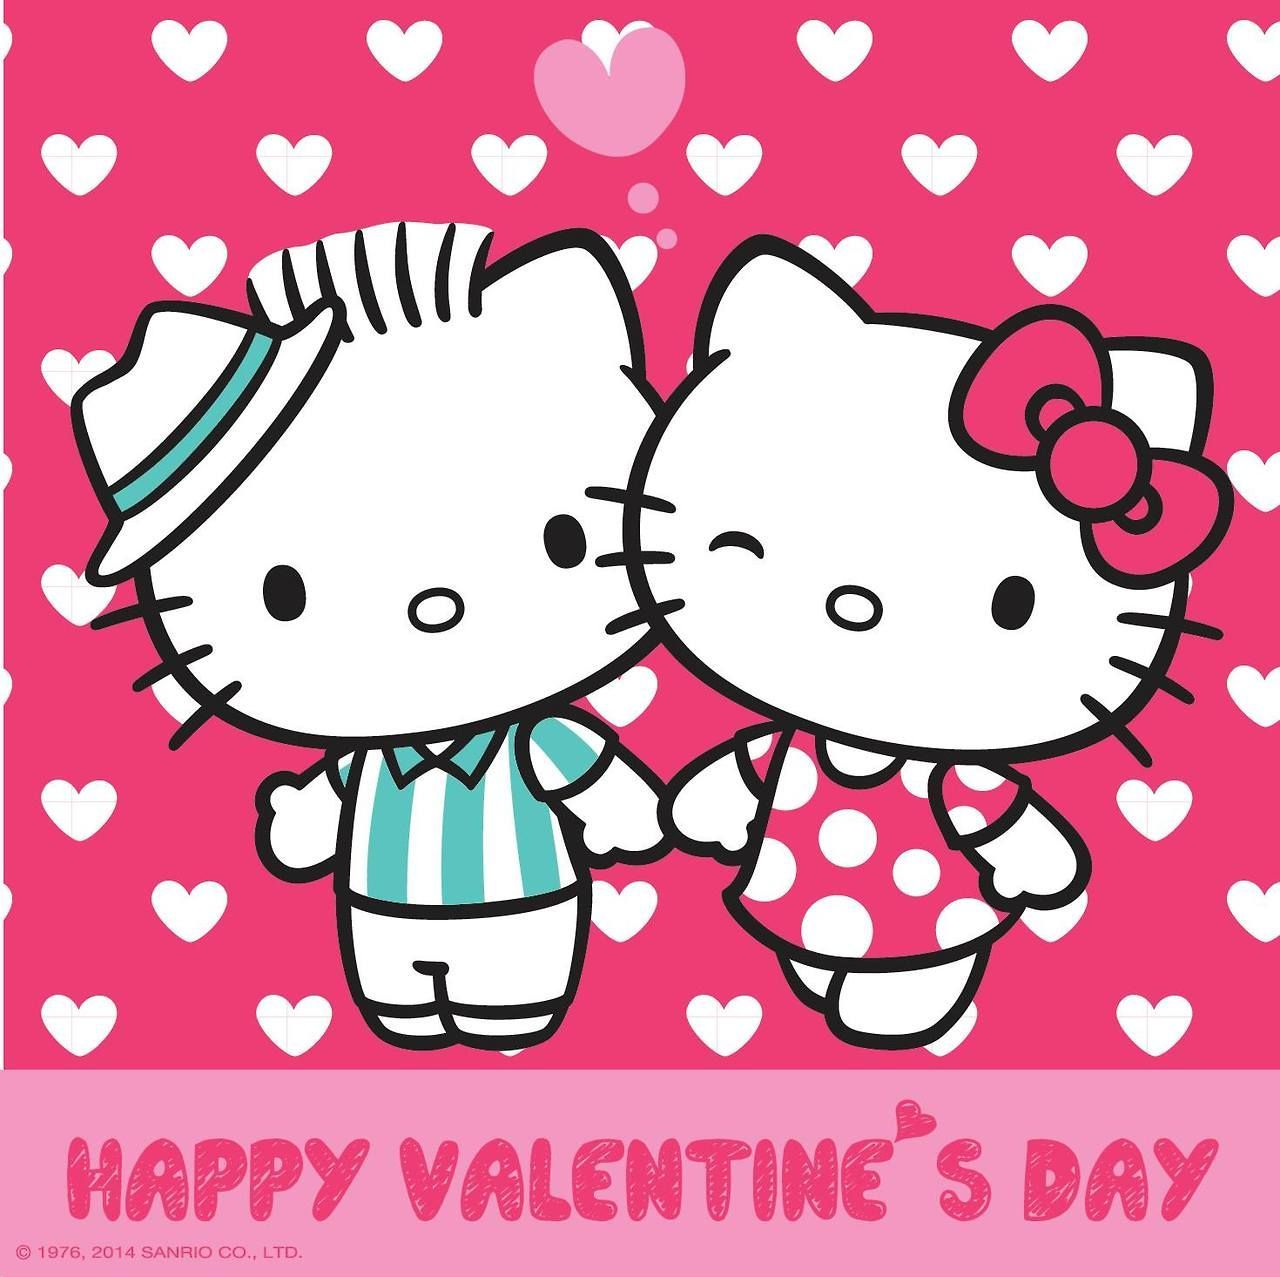 1280x1277 Dear Daniel and Hello Kitty on Valentine's Day high res